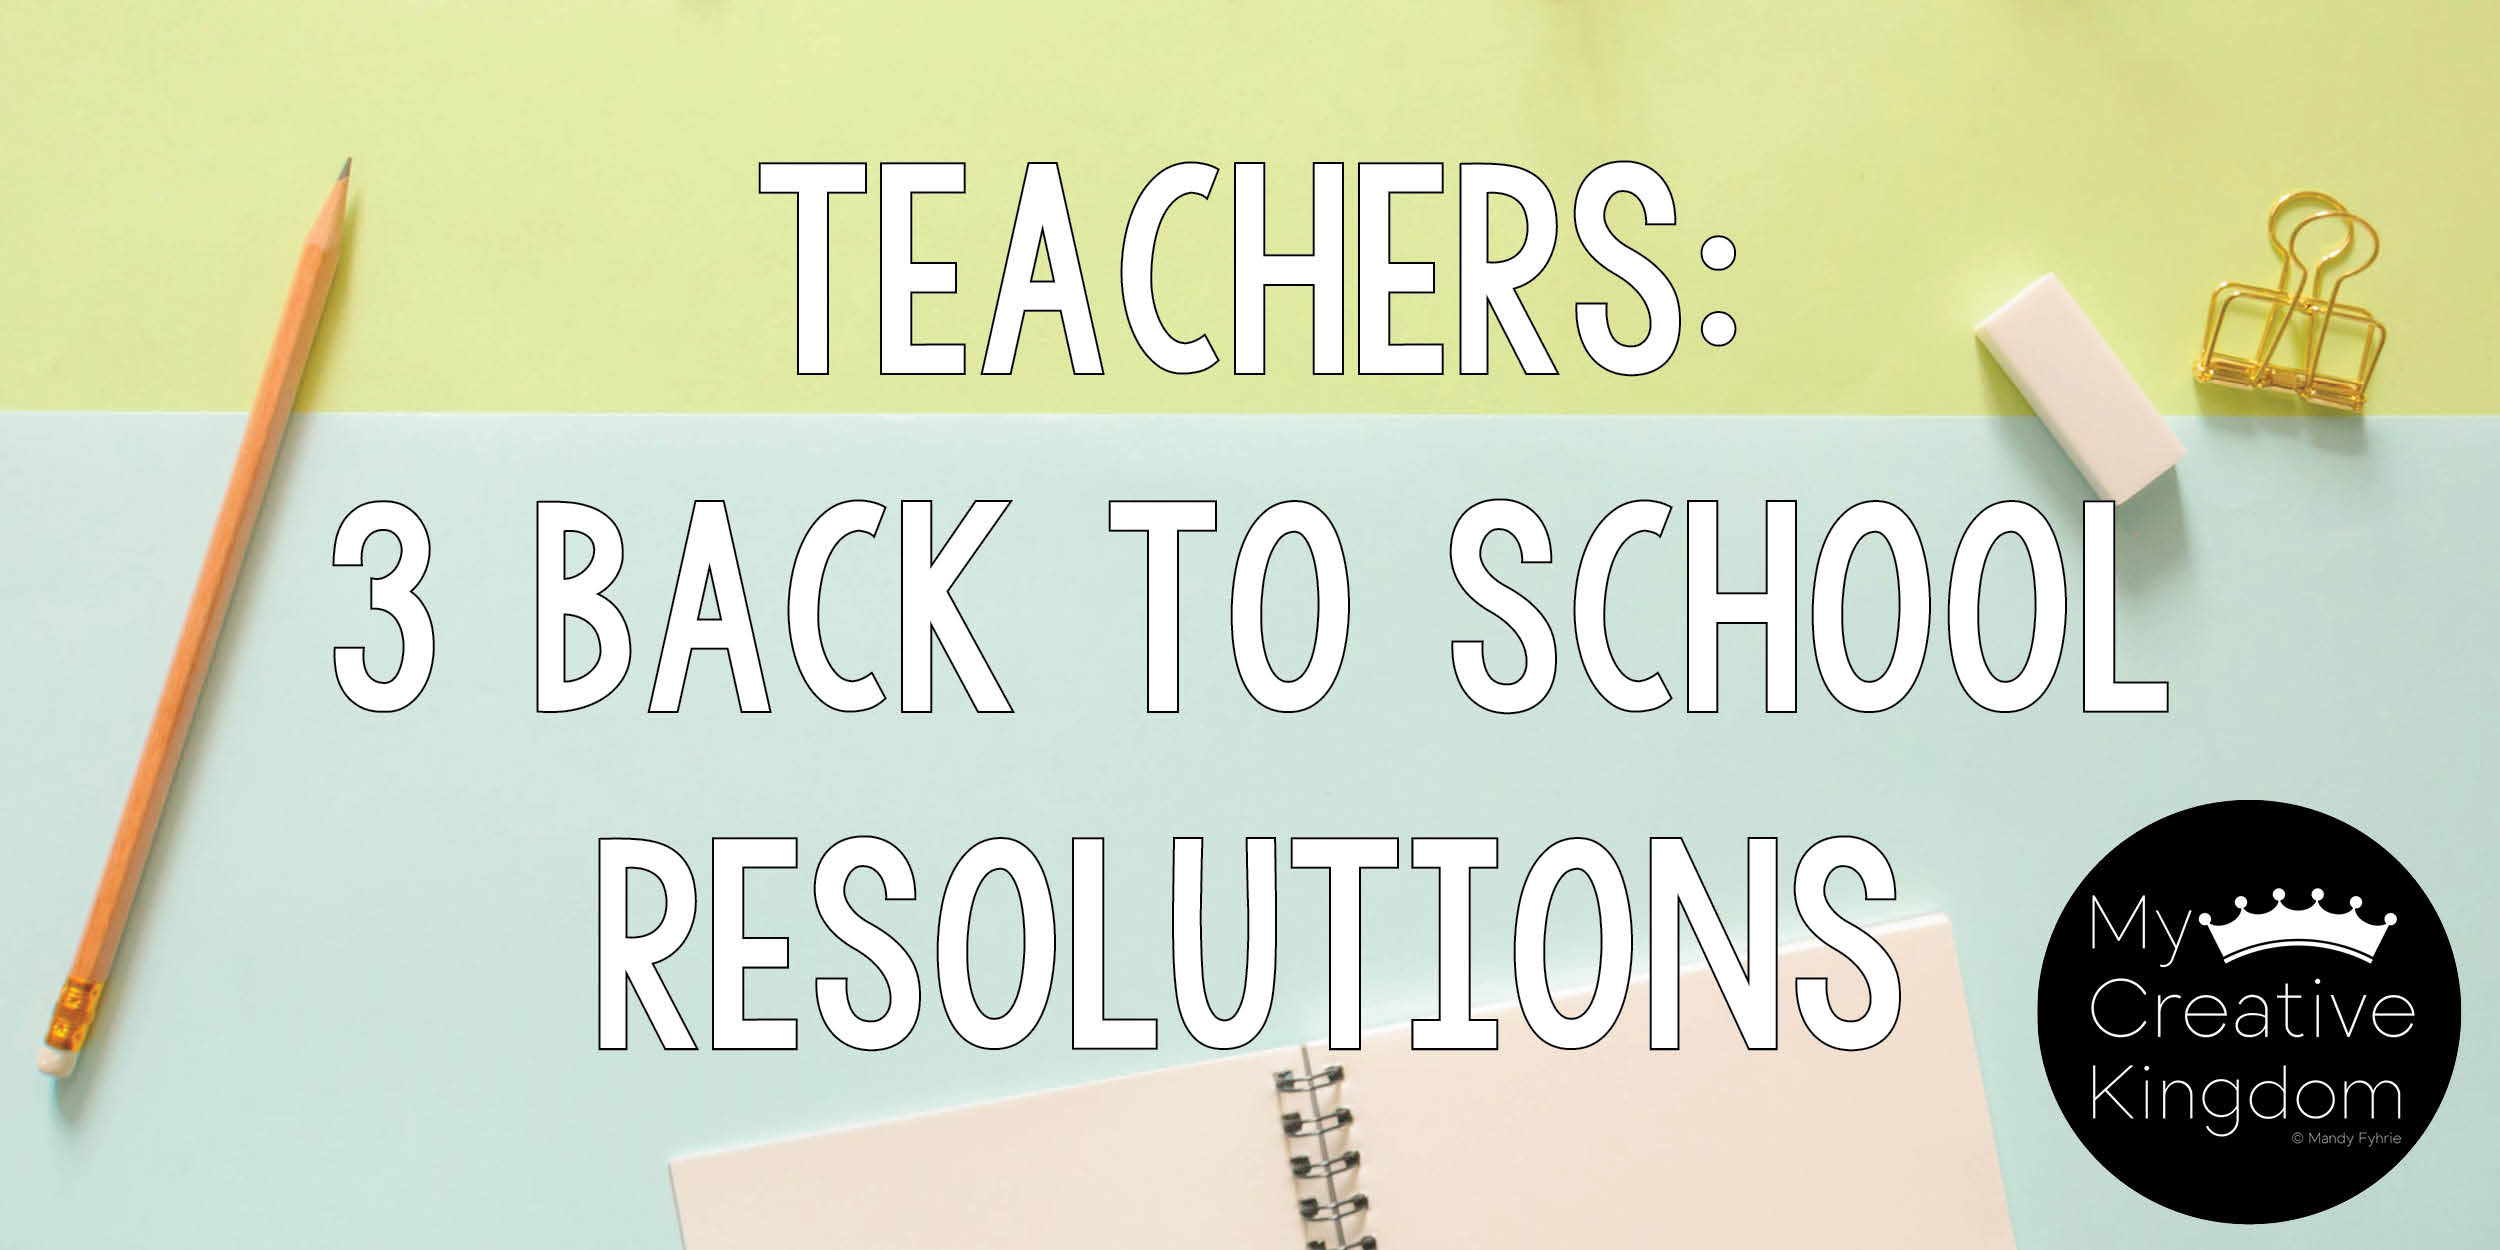 Teachers: 3 Back to School Resolutions